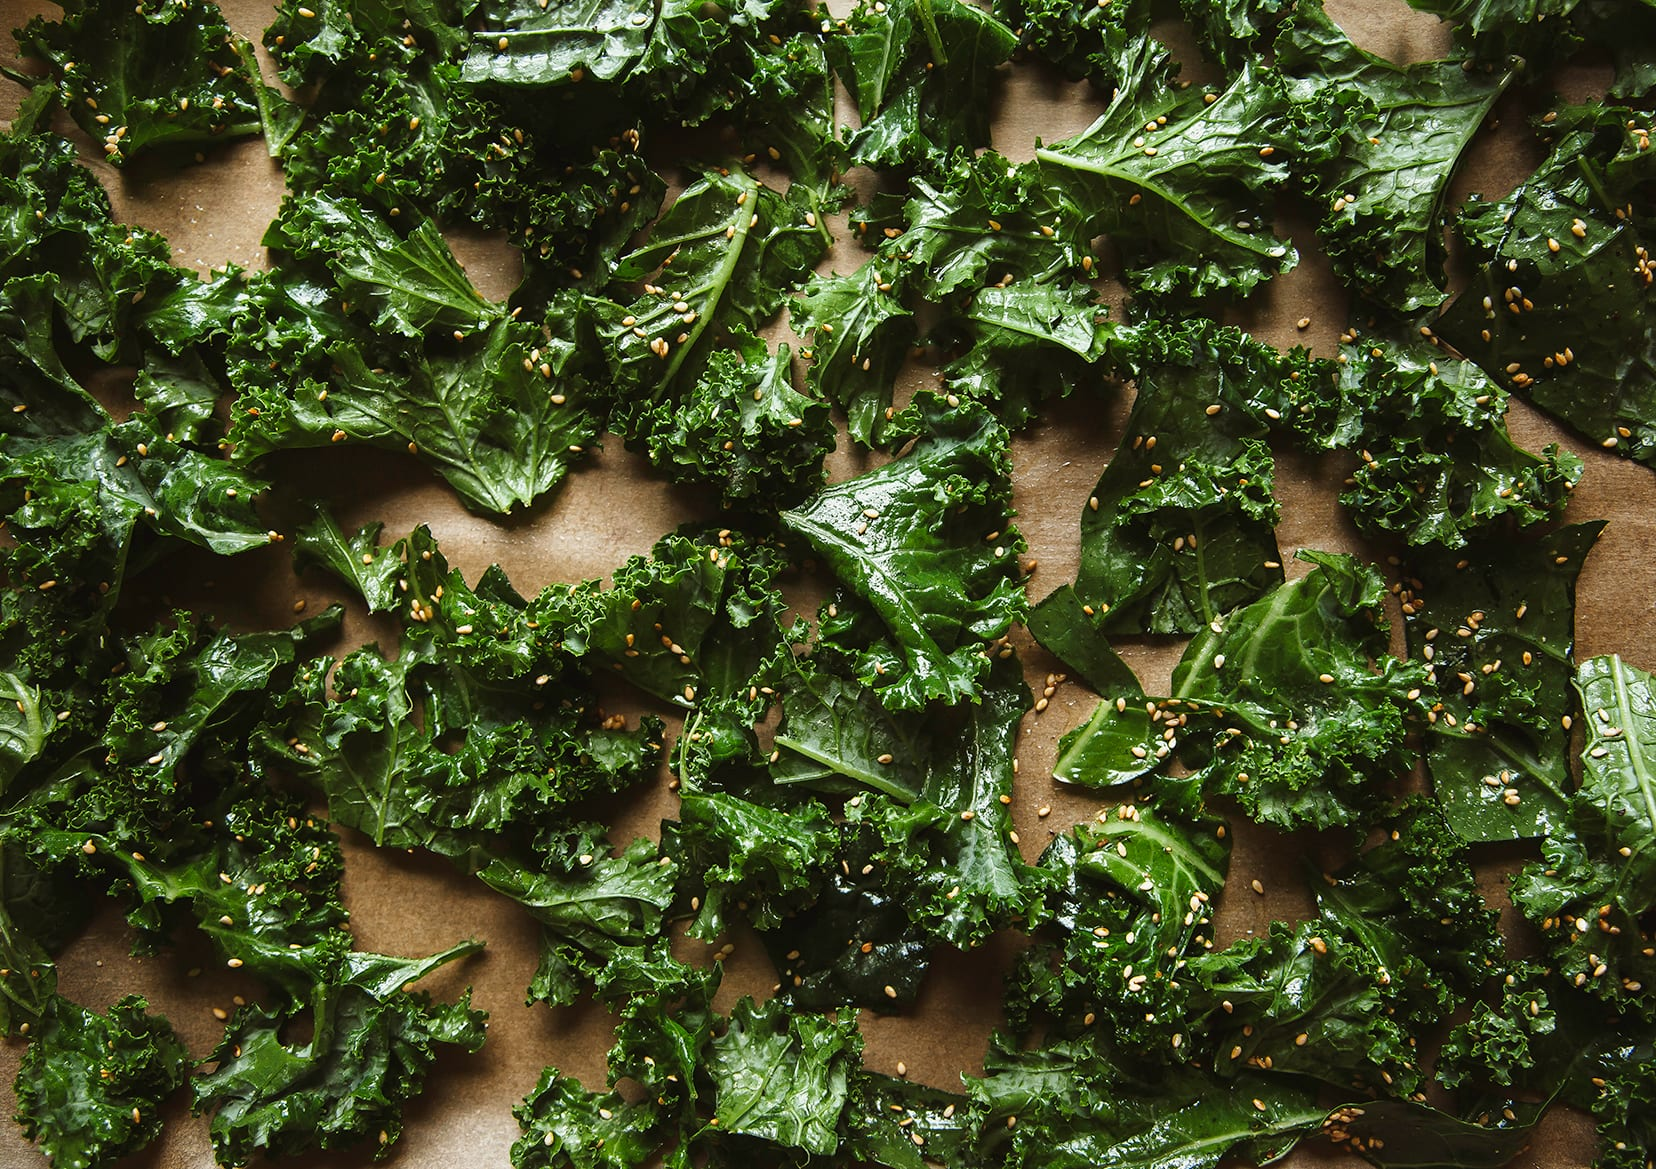 Image shows a bunch of kale leaves coated in oil, before roasting.